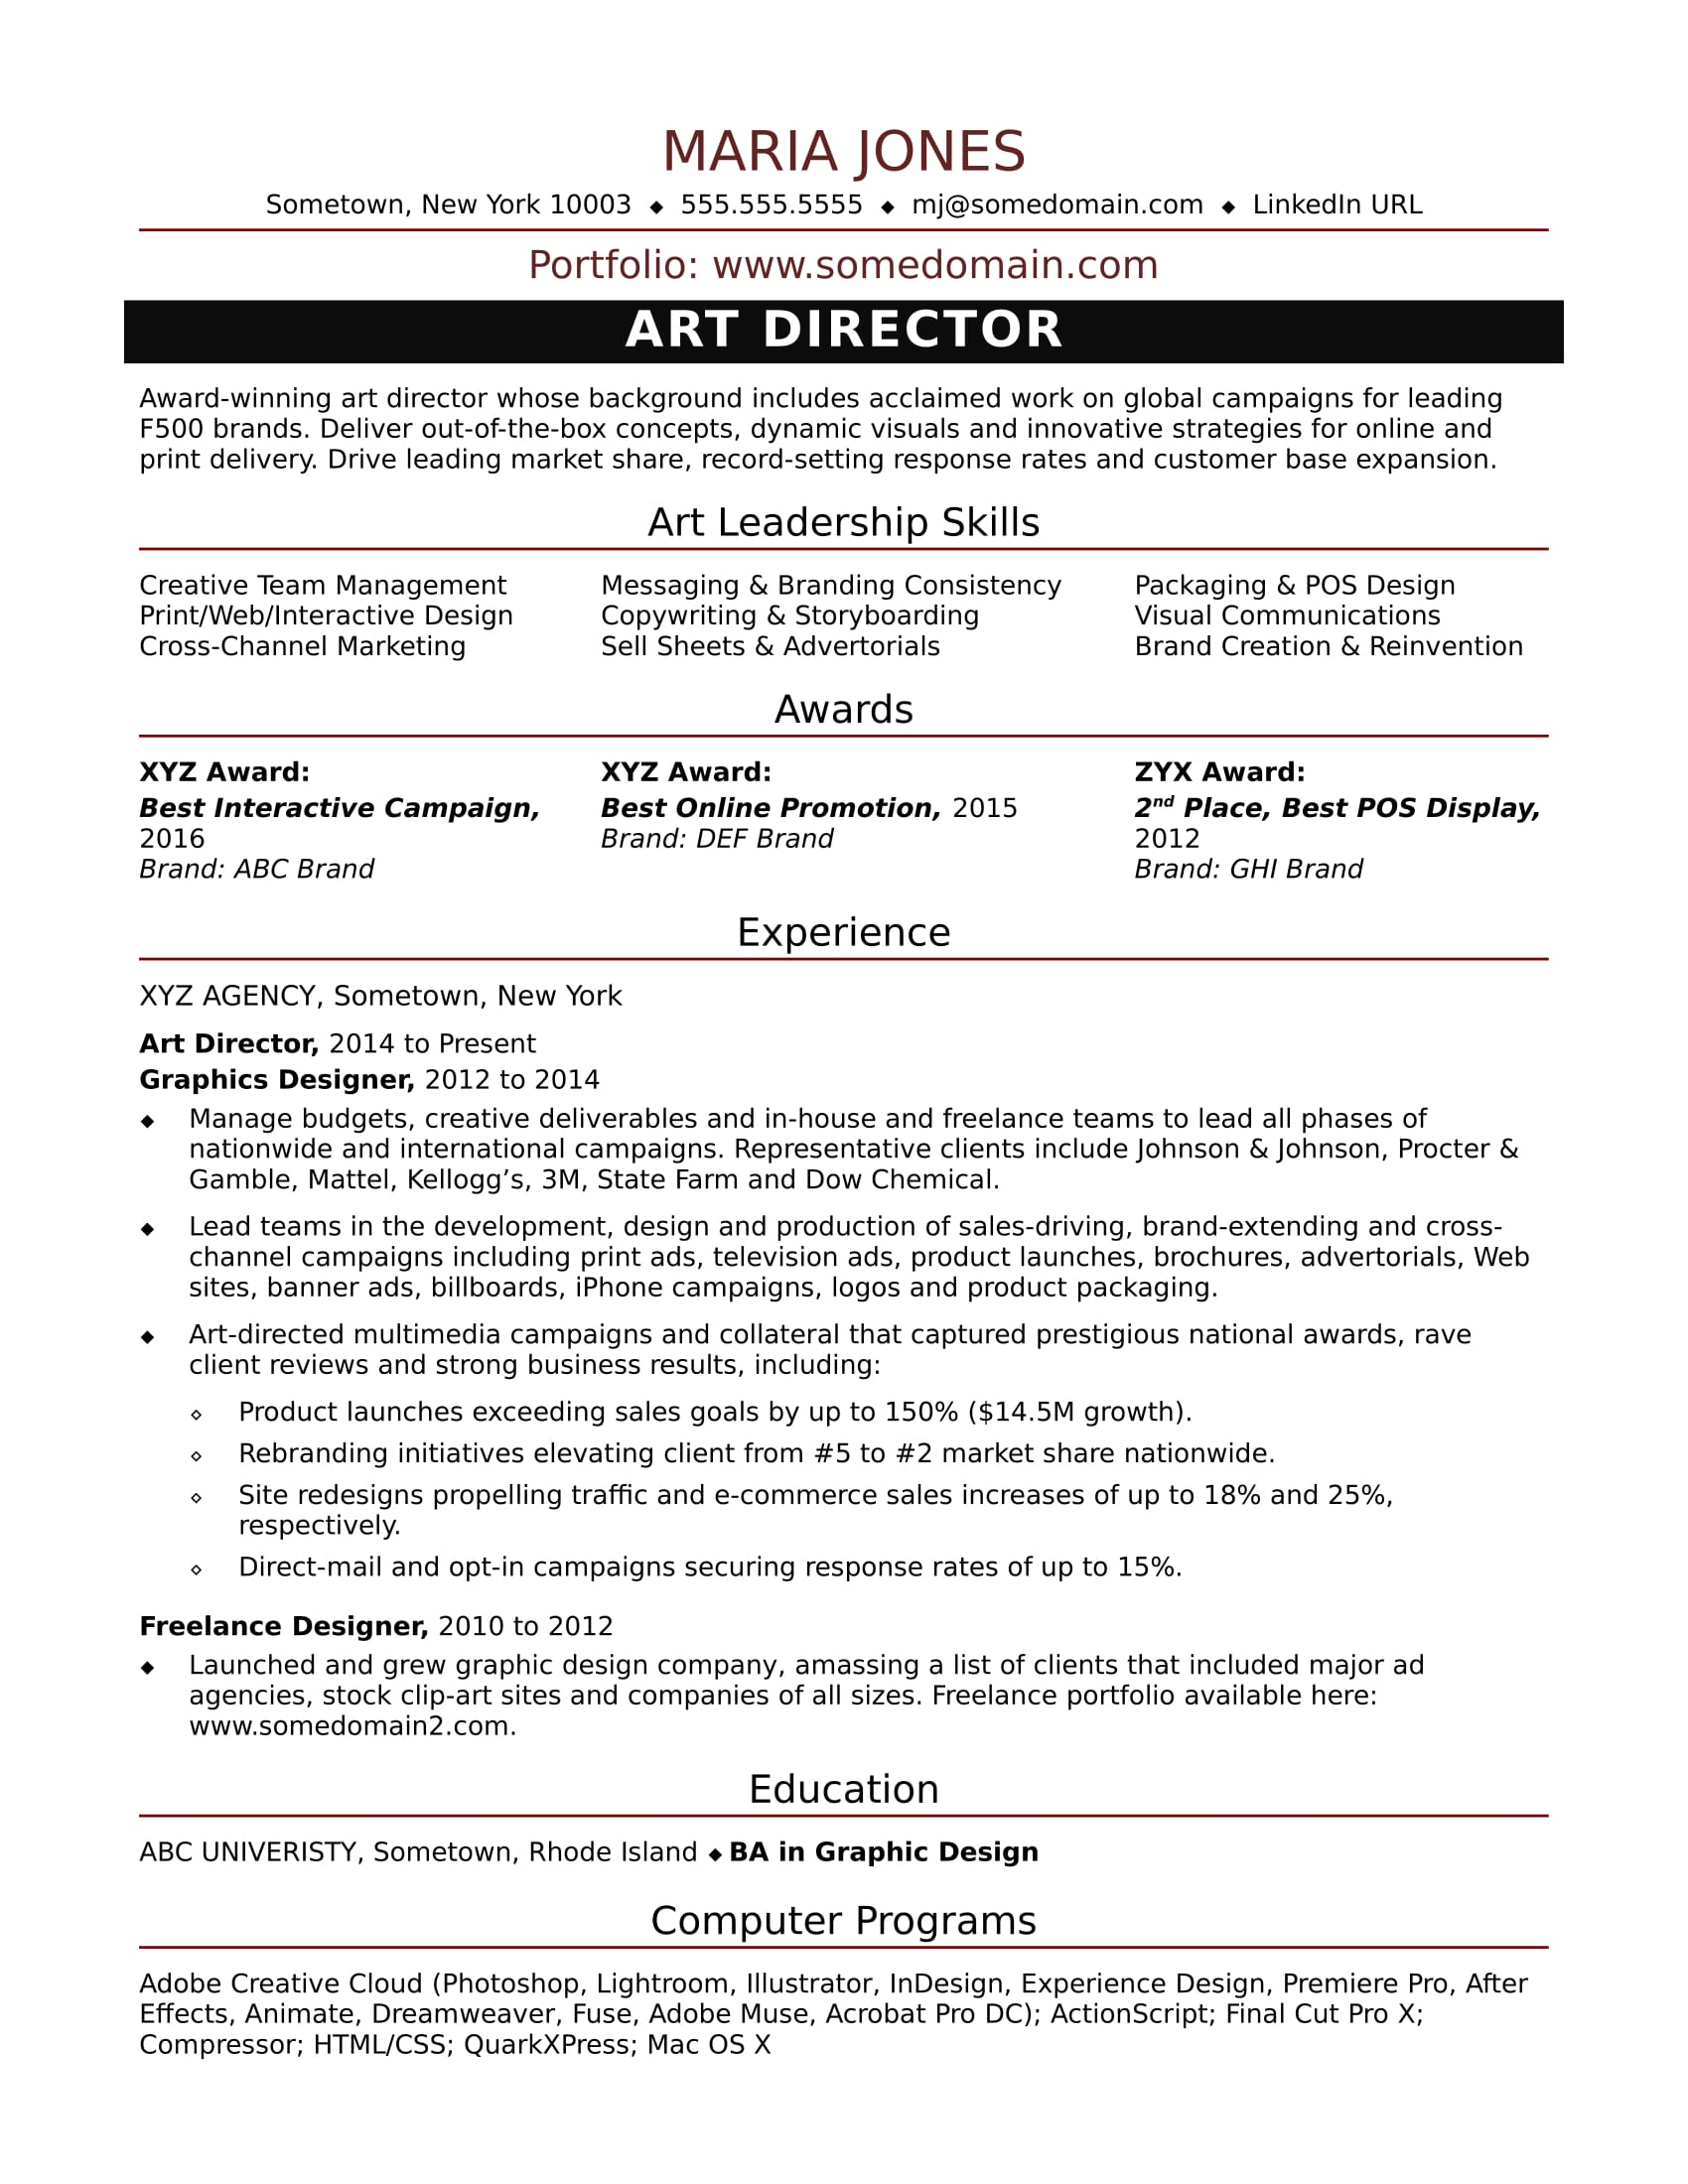 sample resume for a midlevel art director